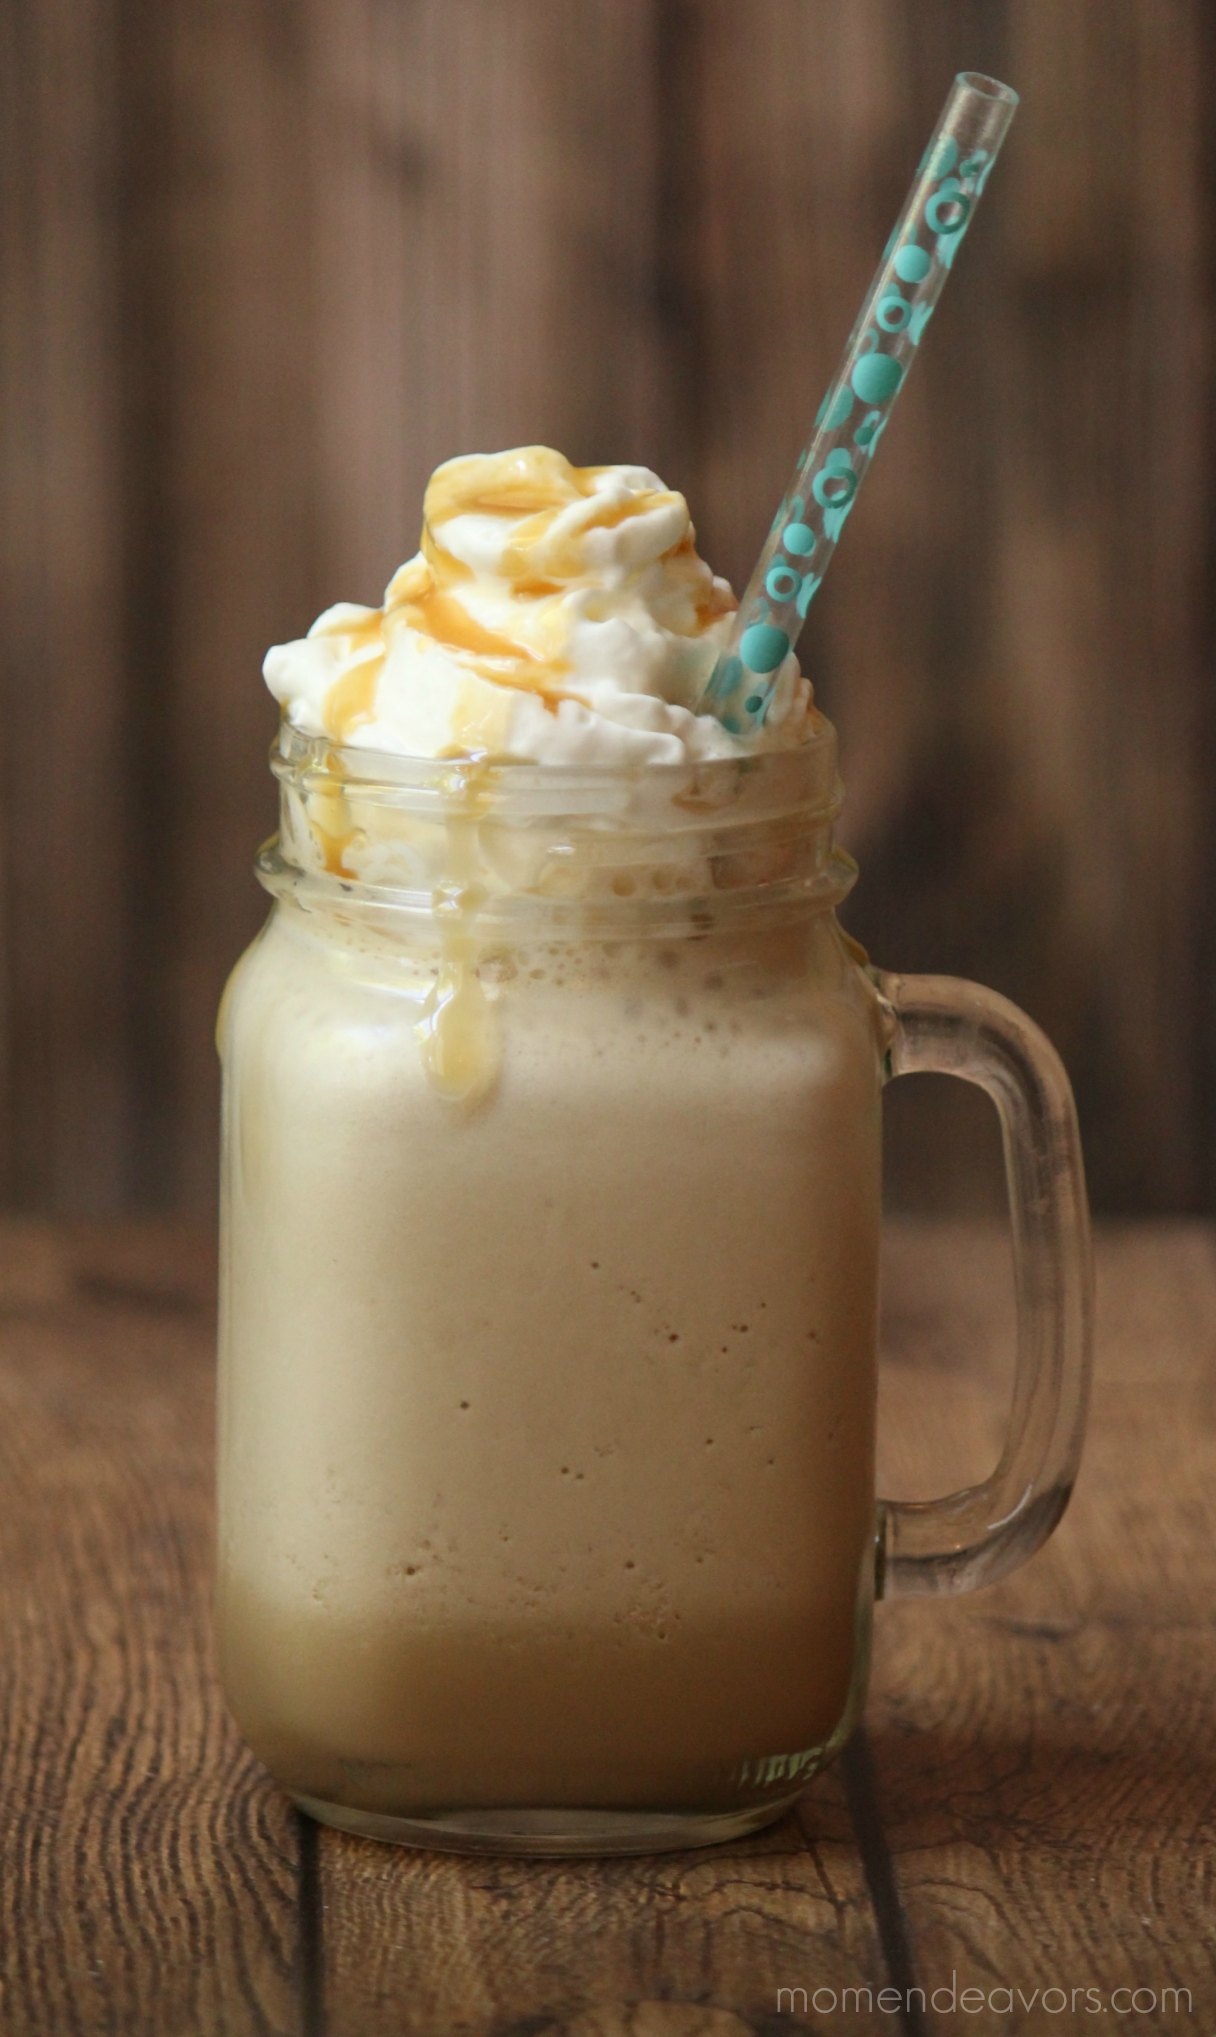 Jun 13,  · PIN Homemade Caramel Vanilla Iced Coffee Coffee snobs, errr CONNOISSEURS, LOOK AWAY. To you, this caramel iced coffee might be ADULTERATING your beloved cup of joe.5/5(1).